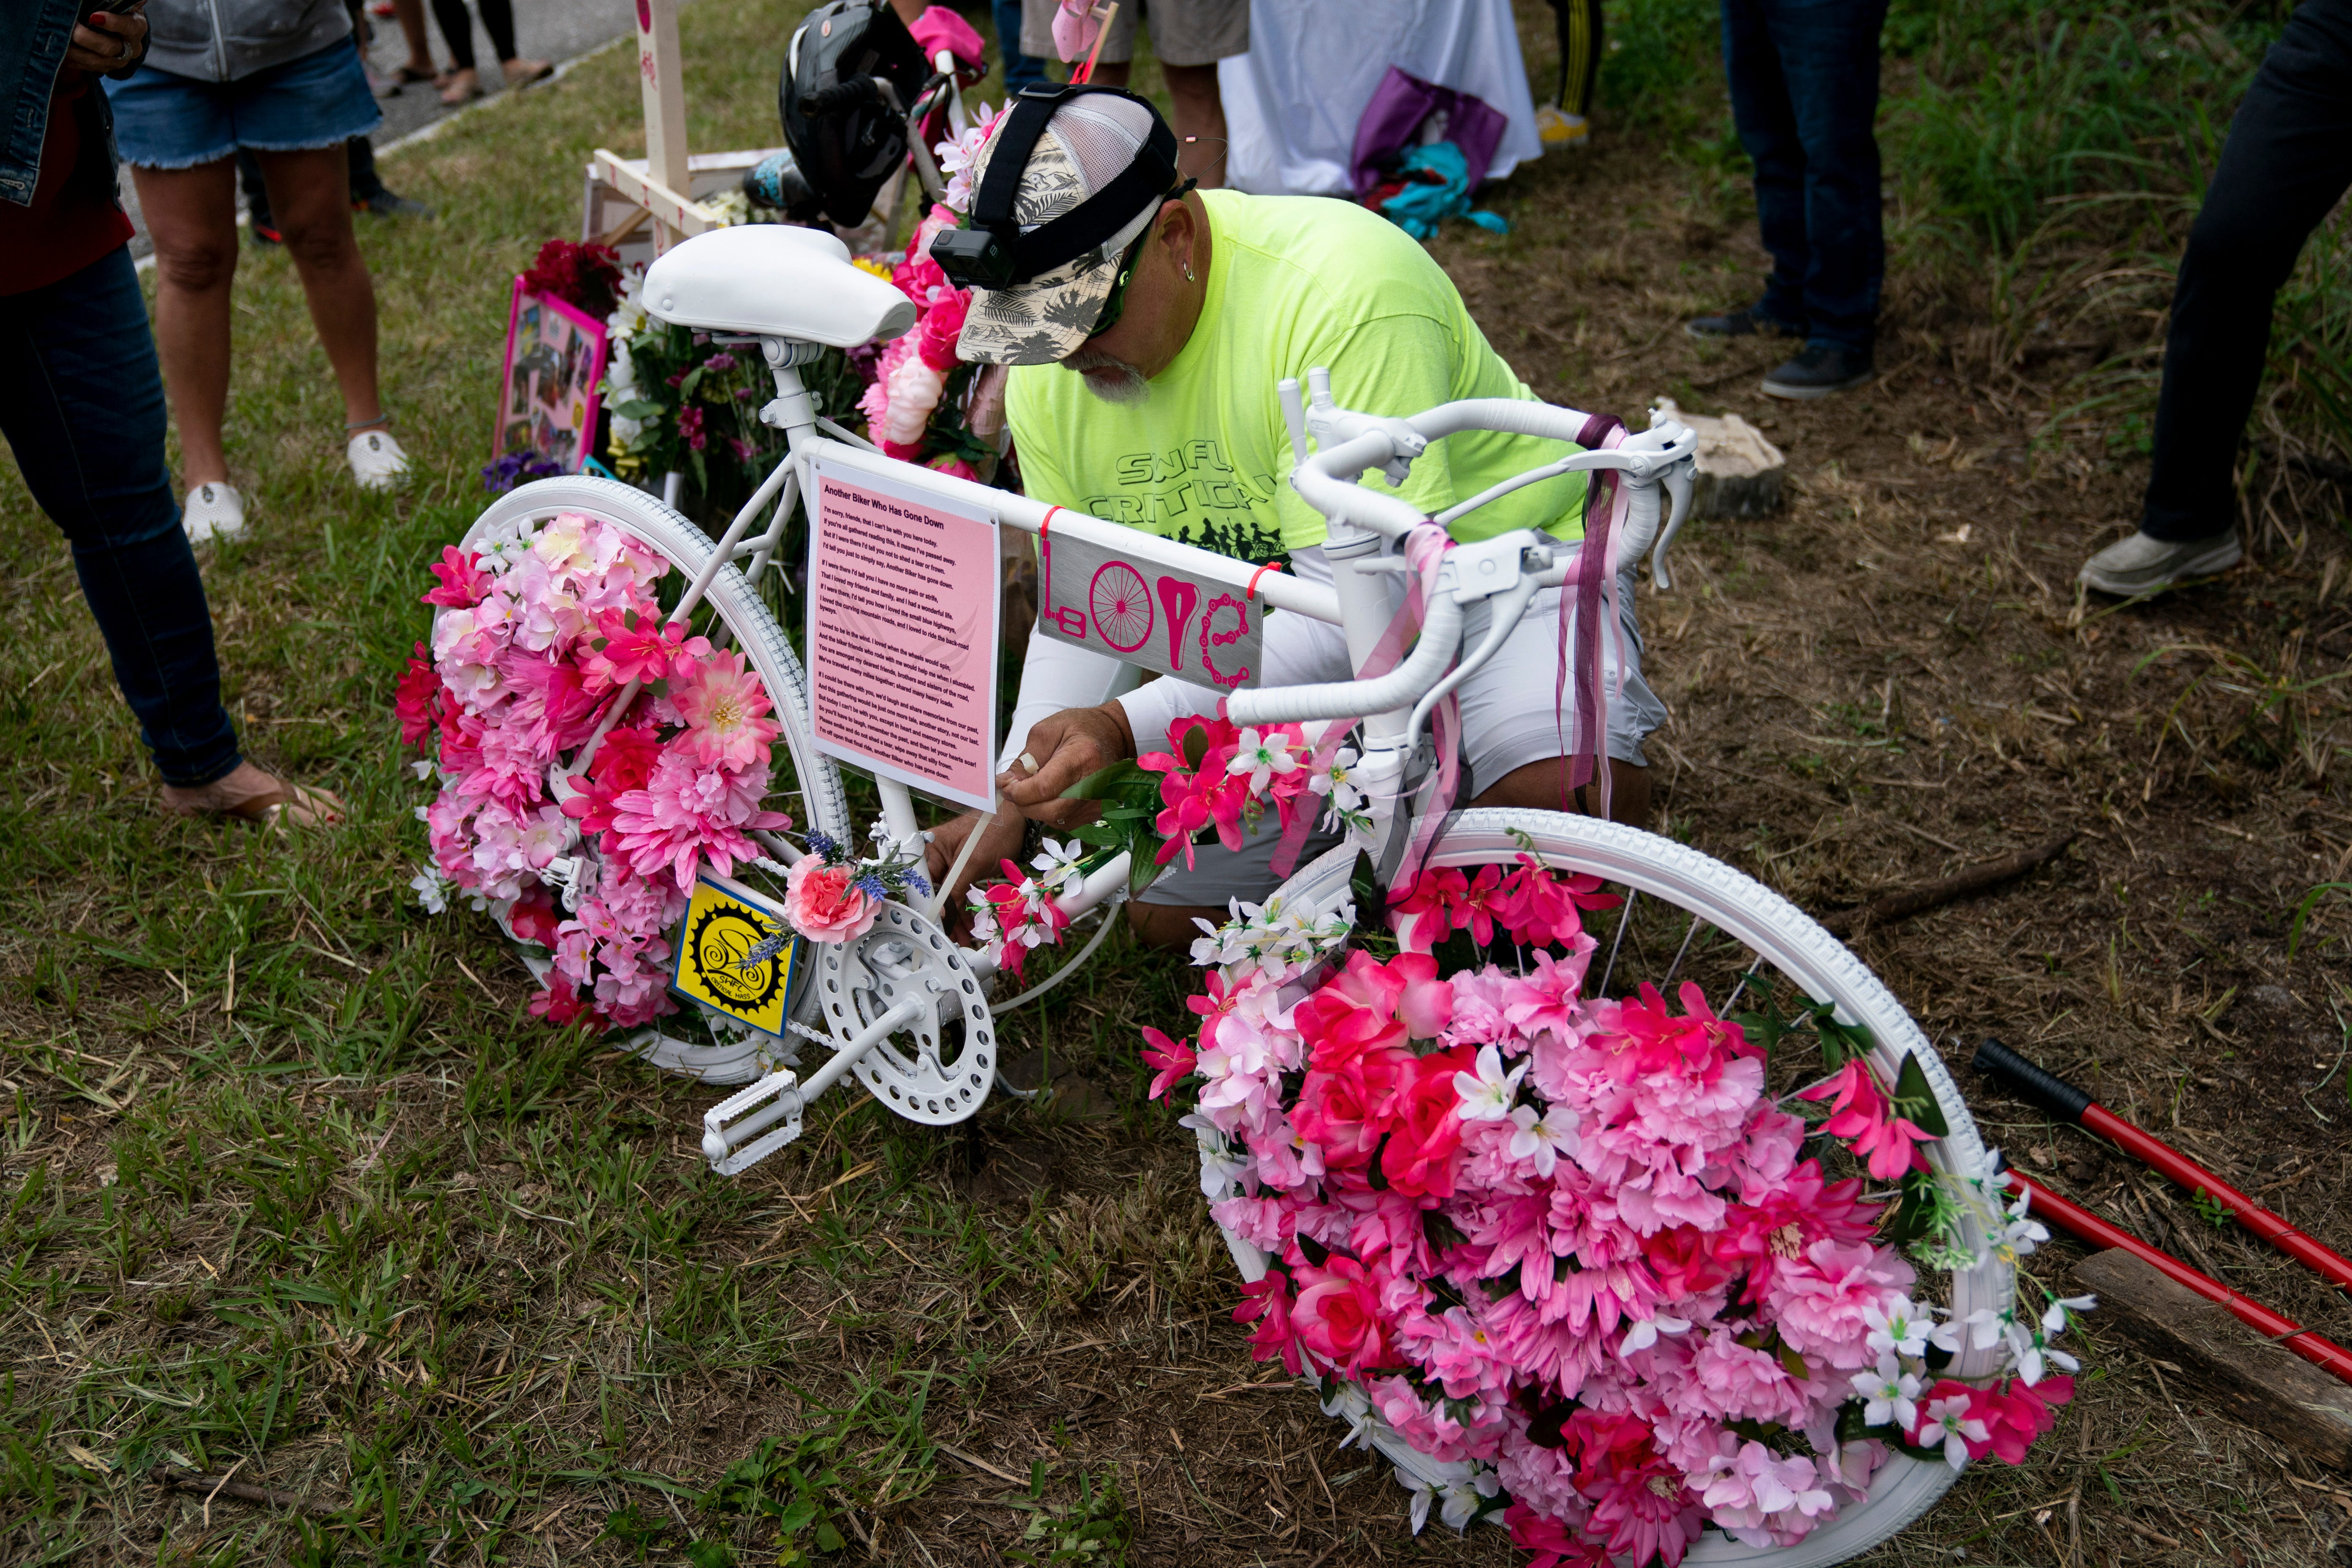 Amid tears and whispers, ghost bike on North River Road honors woman killed and another injured on March 14 3